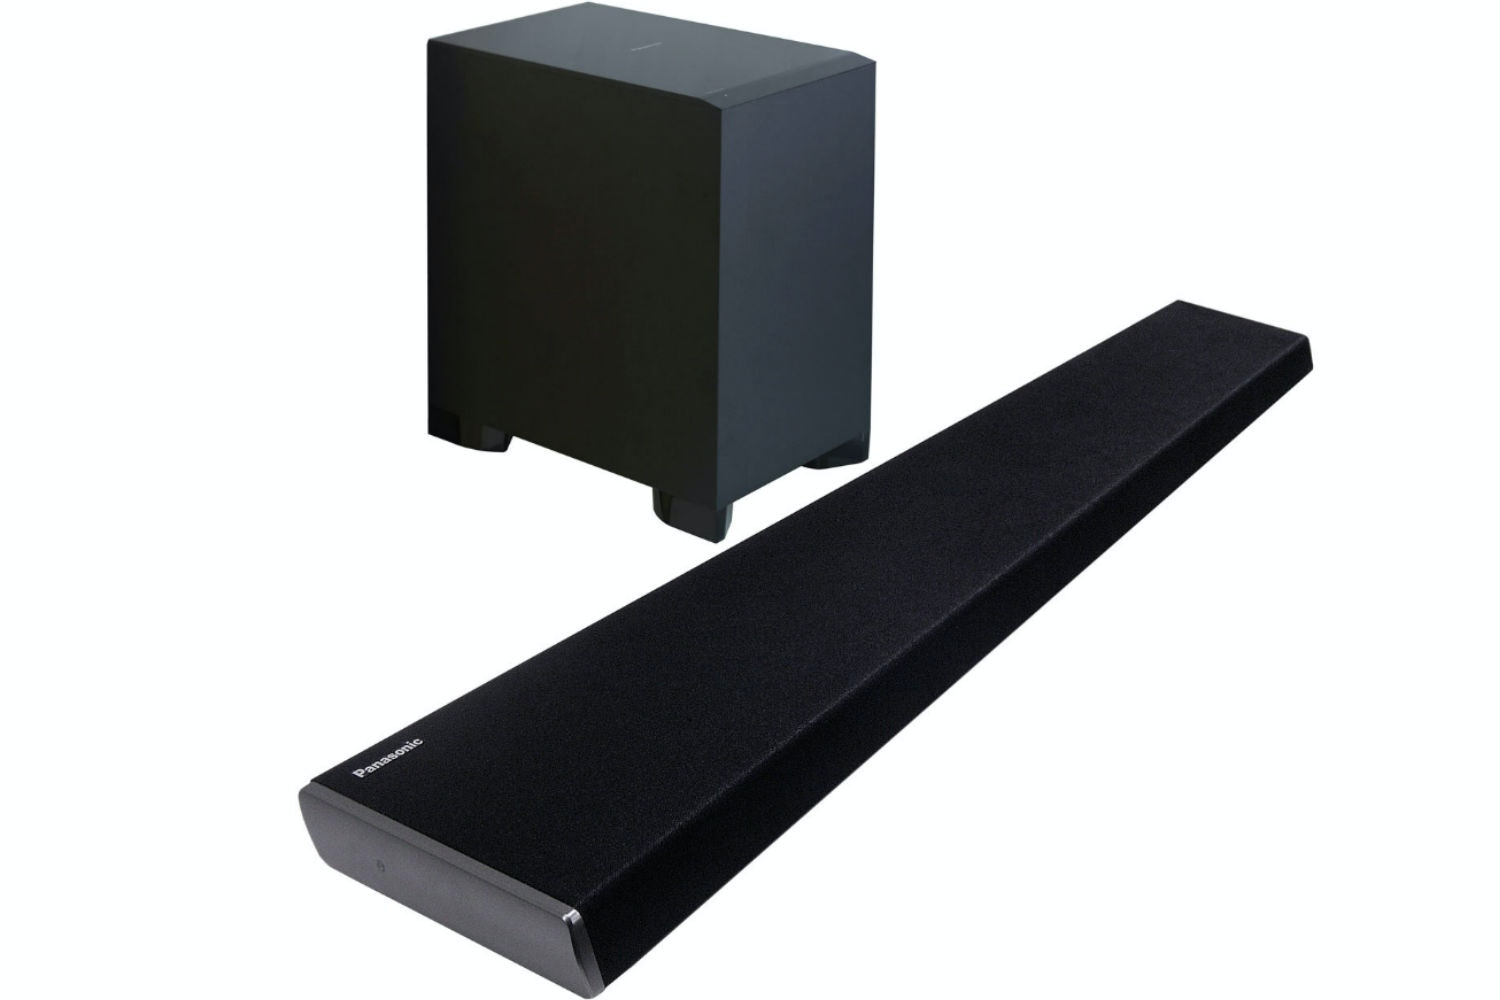 Panasonic Wireless Soundbar